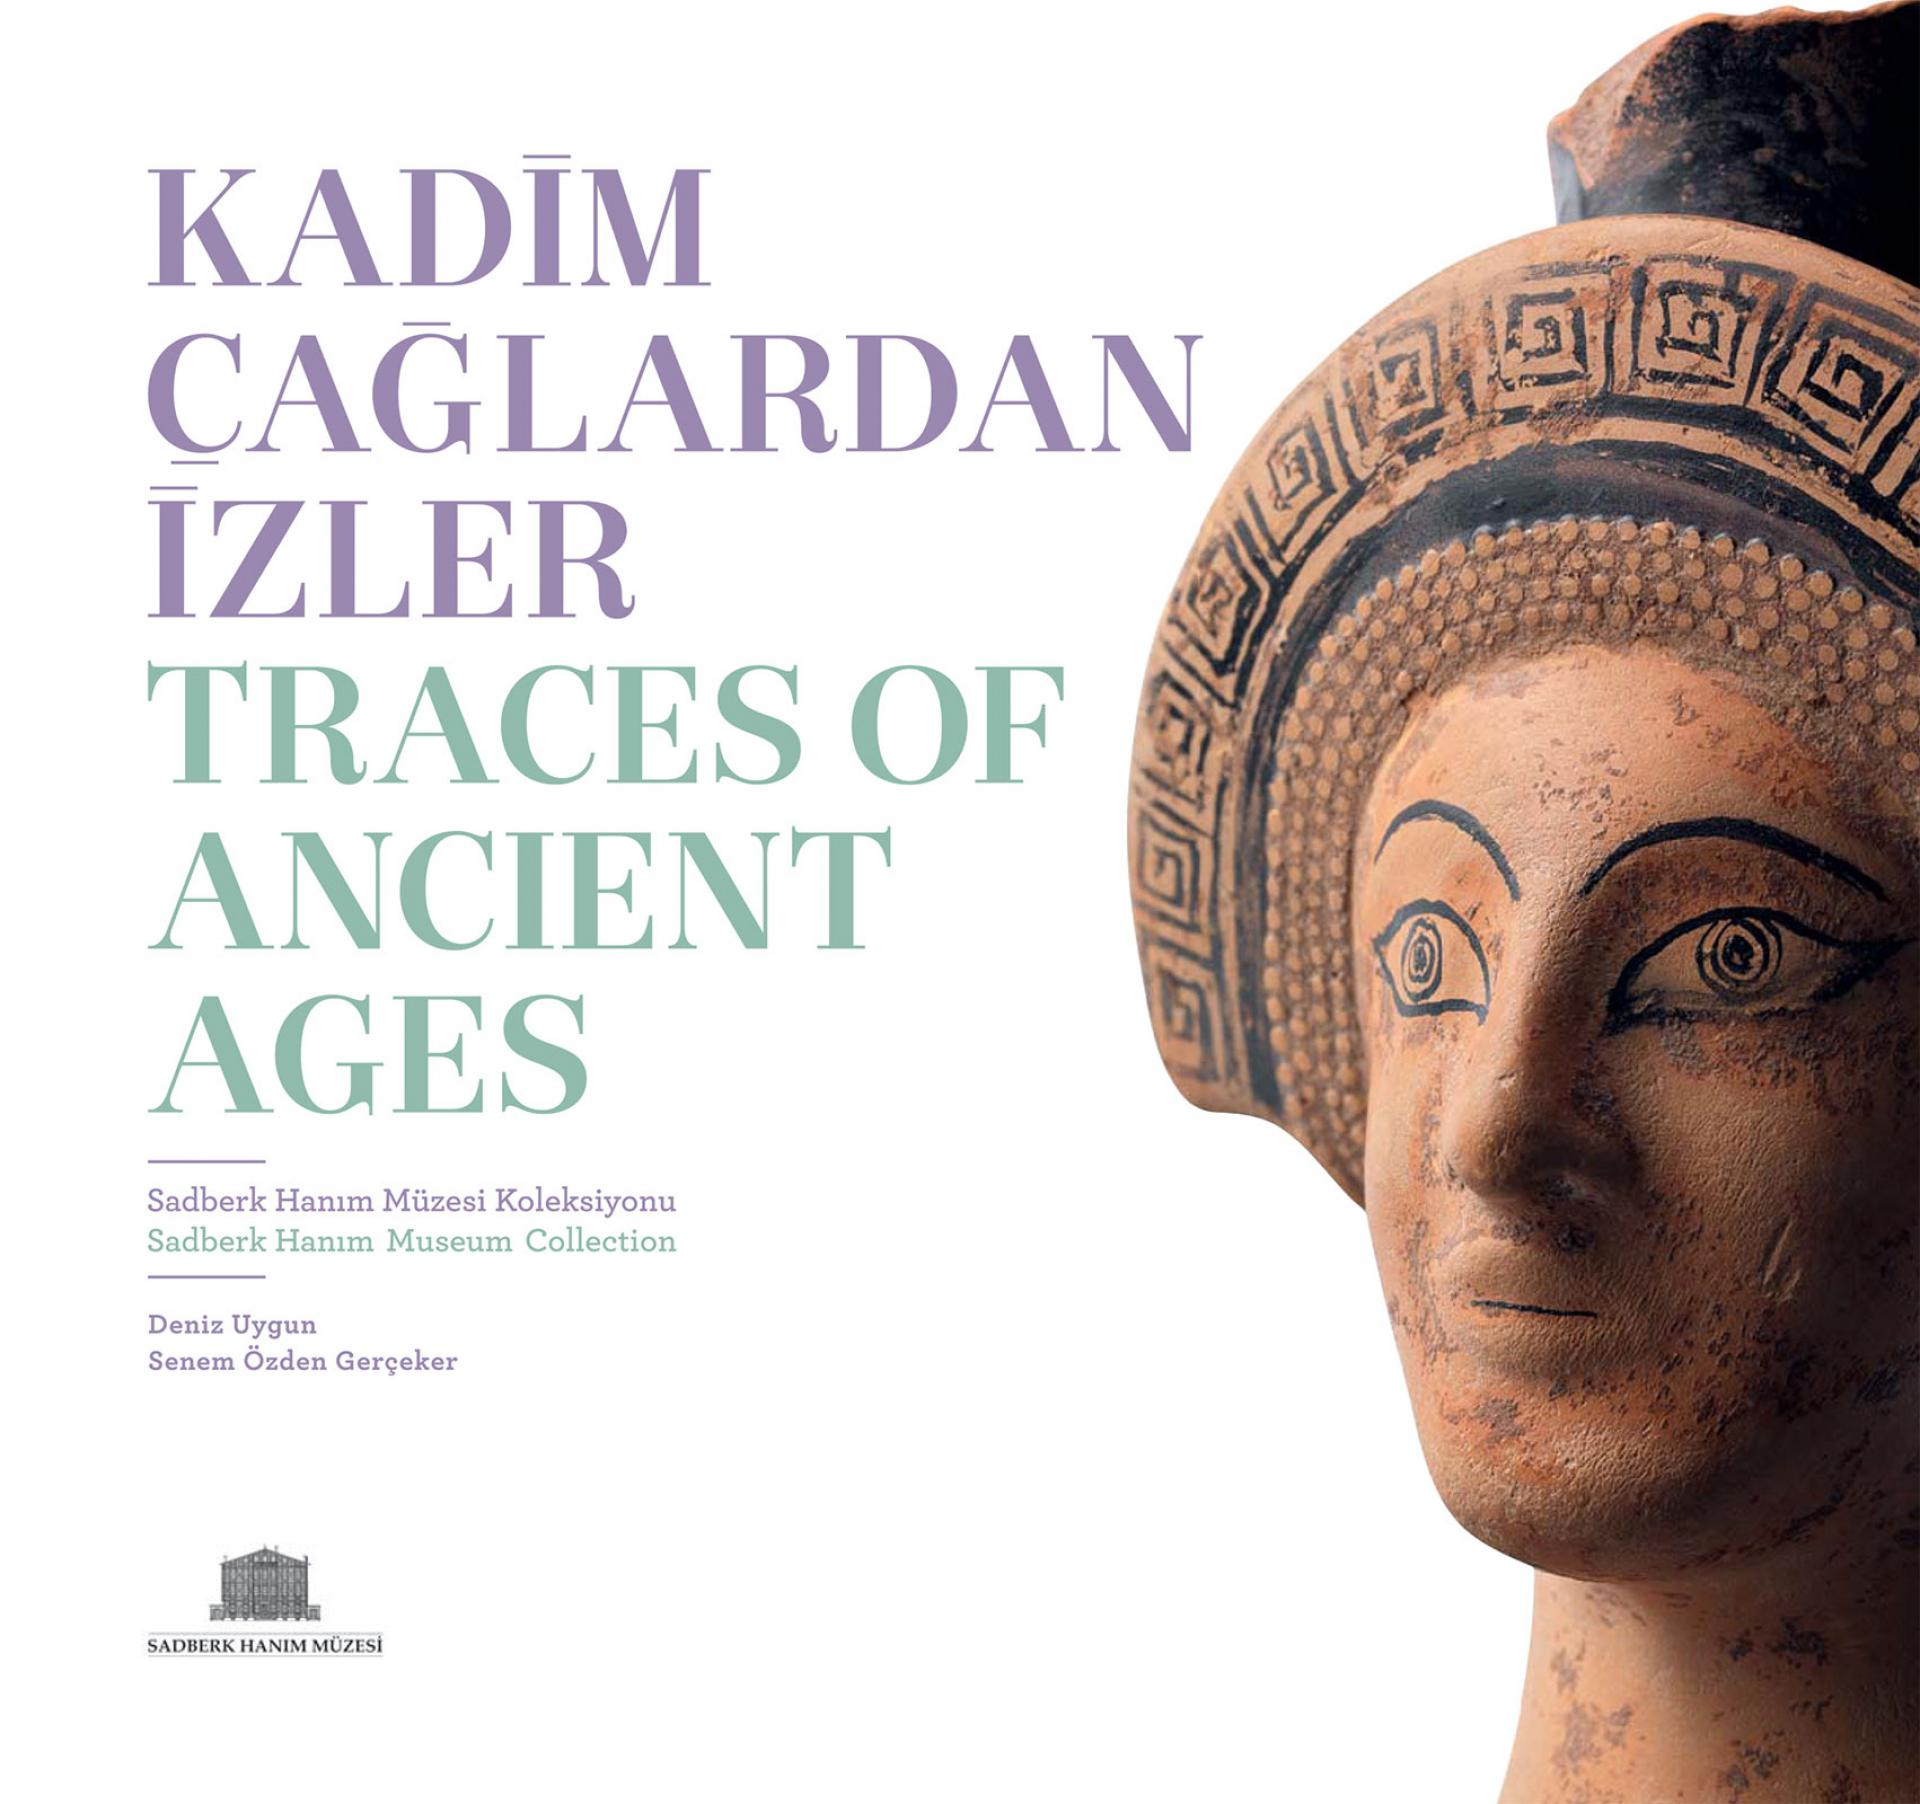 Traces Of Ancient Ages - Sadberk Hanım Museum Collection - EXHIBITIONS - Sadberk Hanım Museum